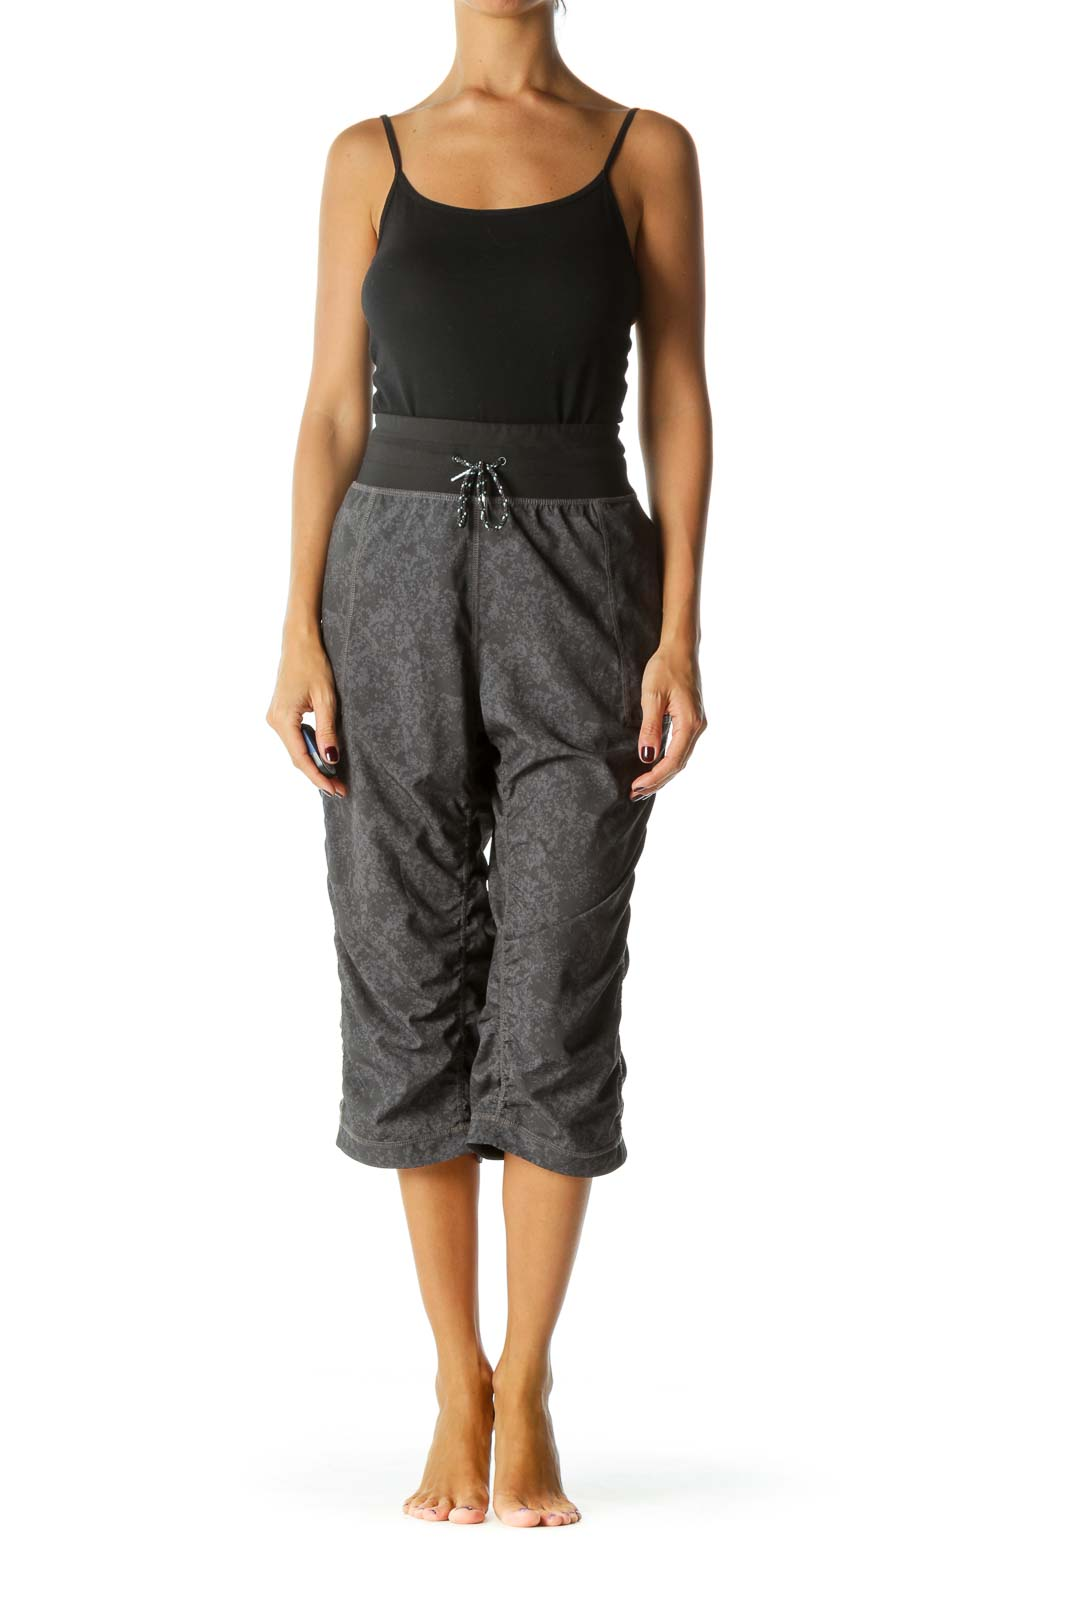 Black Gray Patterned Ruffle Sports Pants